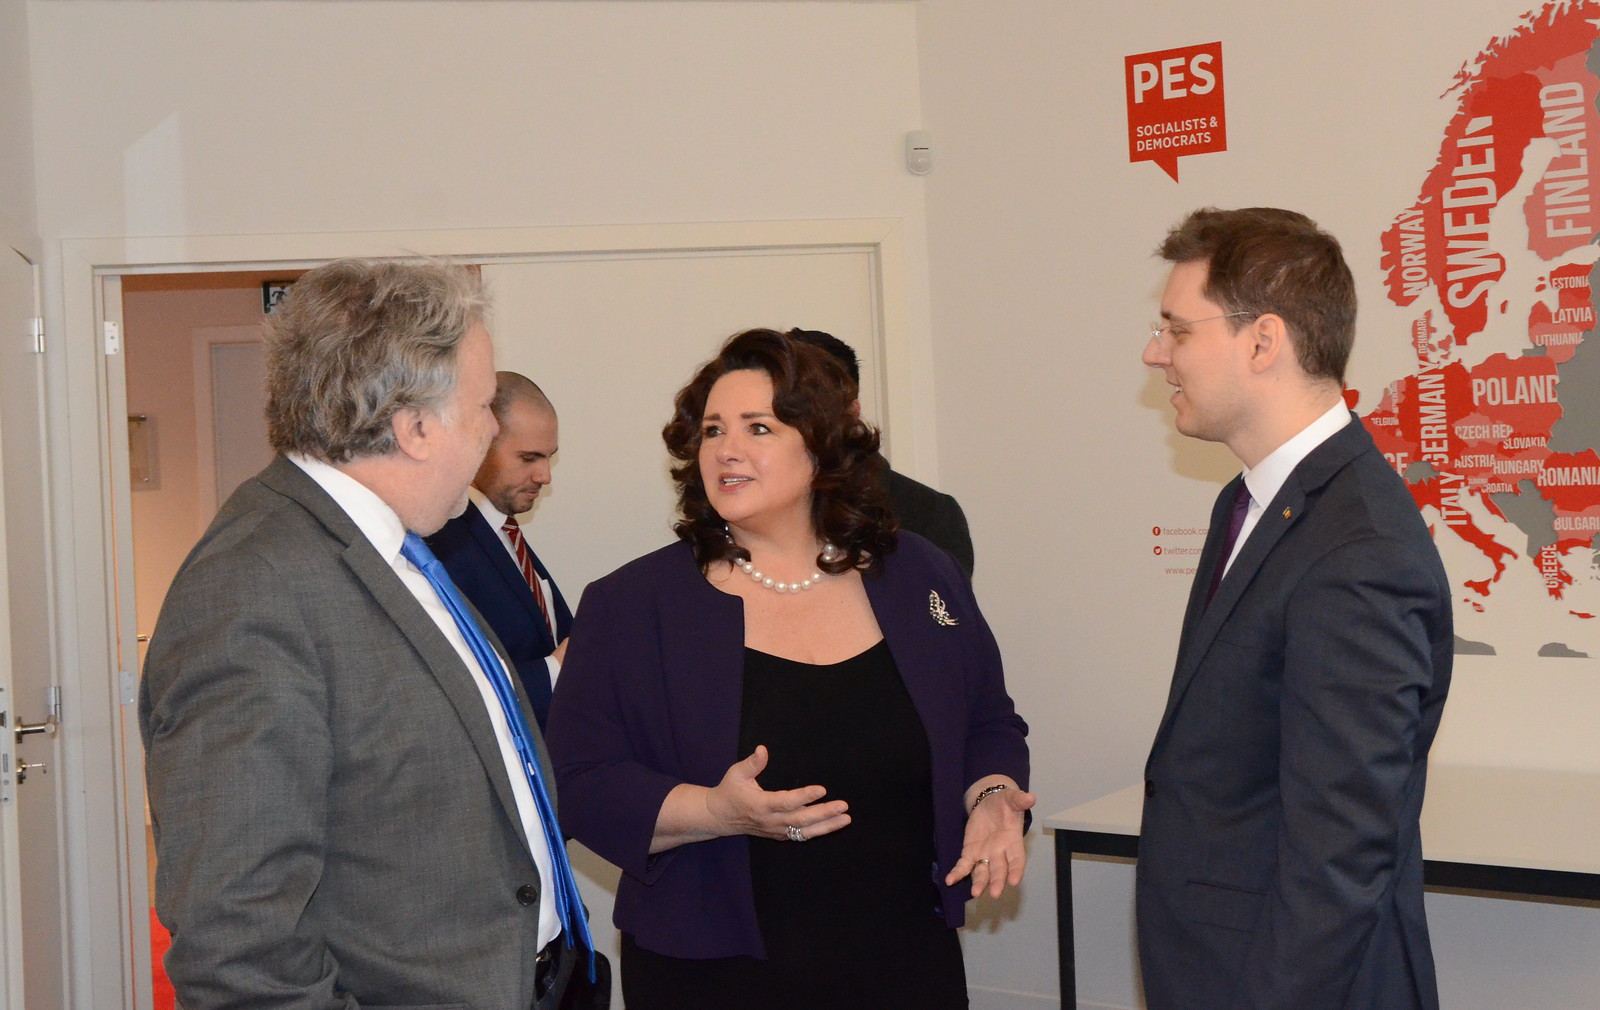 PES General Affairs ministerial, Brussels, 27 February 2018